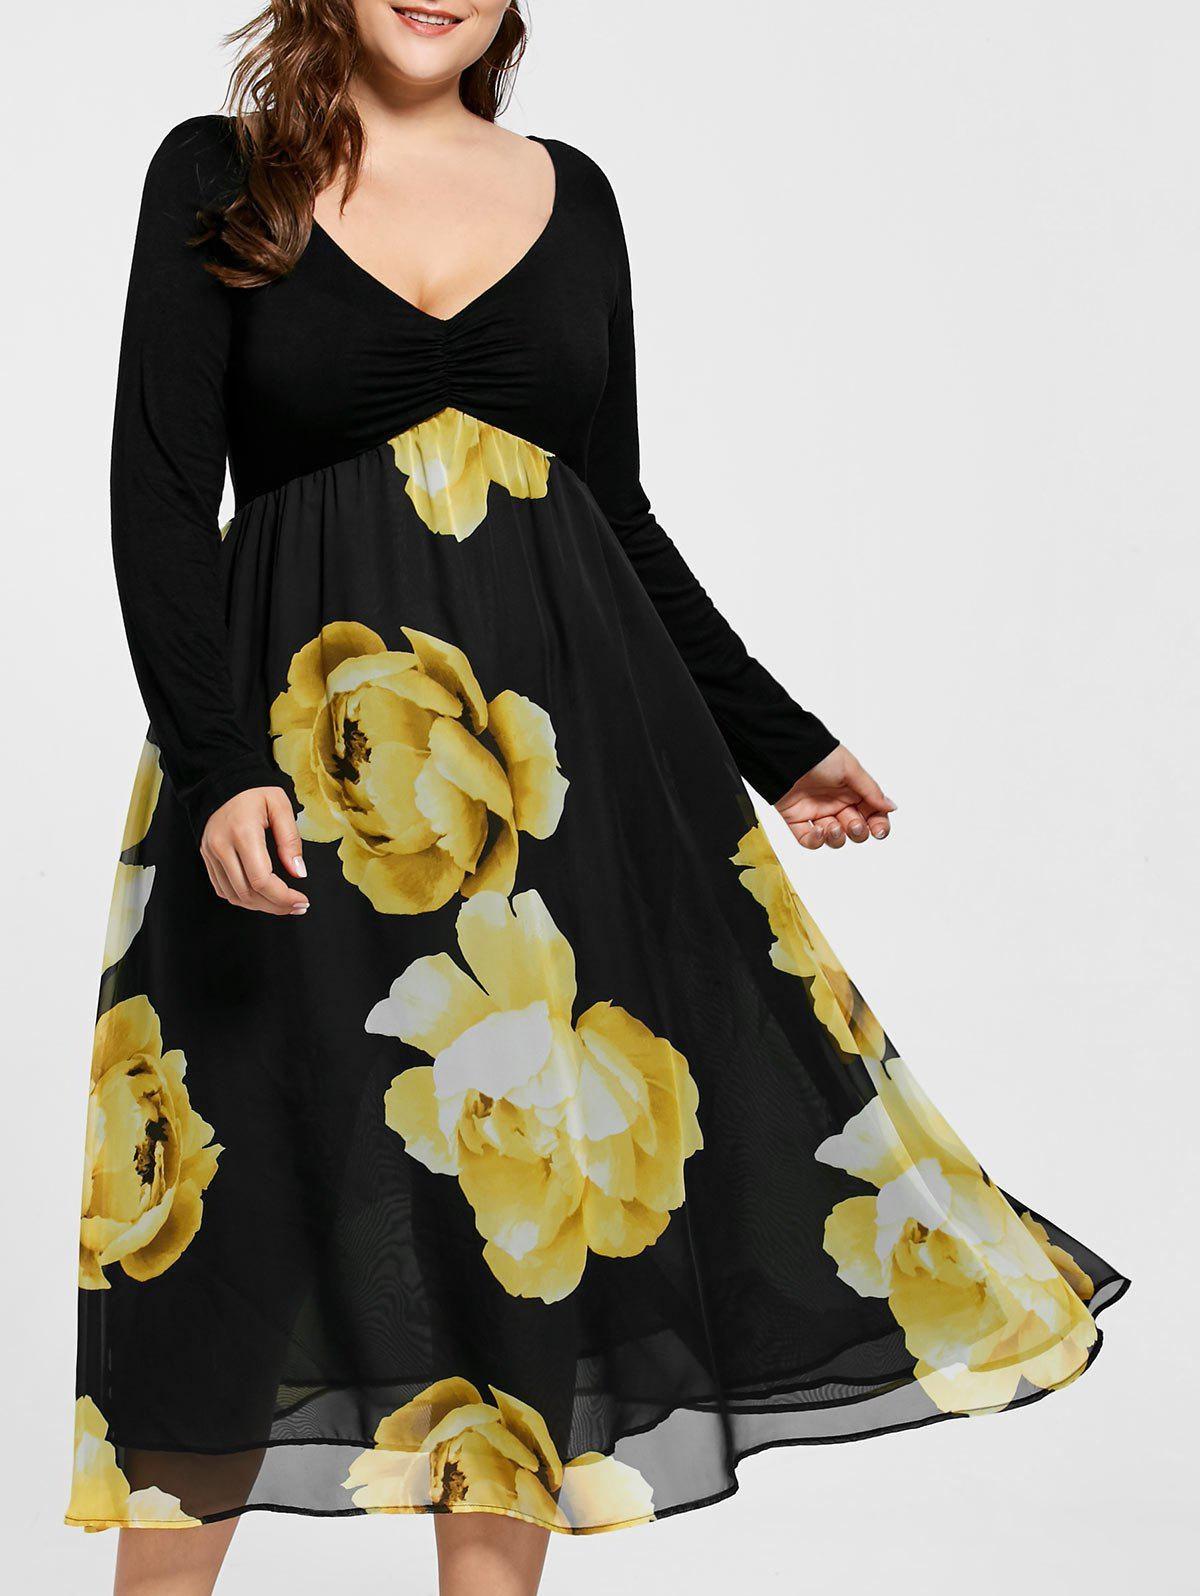 Empire Waist Floral Plus Size Midi DressWOMEN<br><br>Size: 5XL; Color: YELLOW; Style: Brief; Material: Polyester; Silhouette: A-Line; Dresses Length: Mid-Calf; Neckline: V-Neck; Sleeve Length: Long Sleeves; Pattern Type: Floral; With Belt: No; Season: Fall,Spring; Weight: 0.4200kg; Package Contents: 1 x Dress;